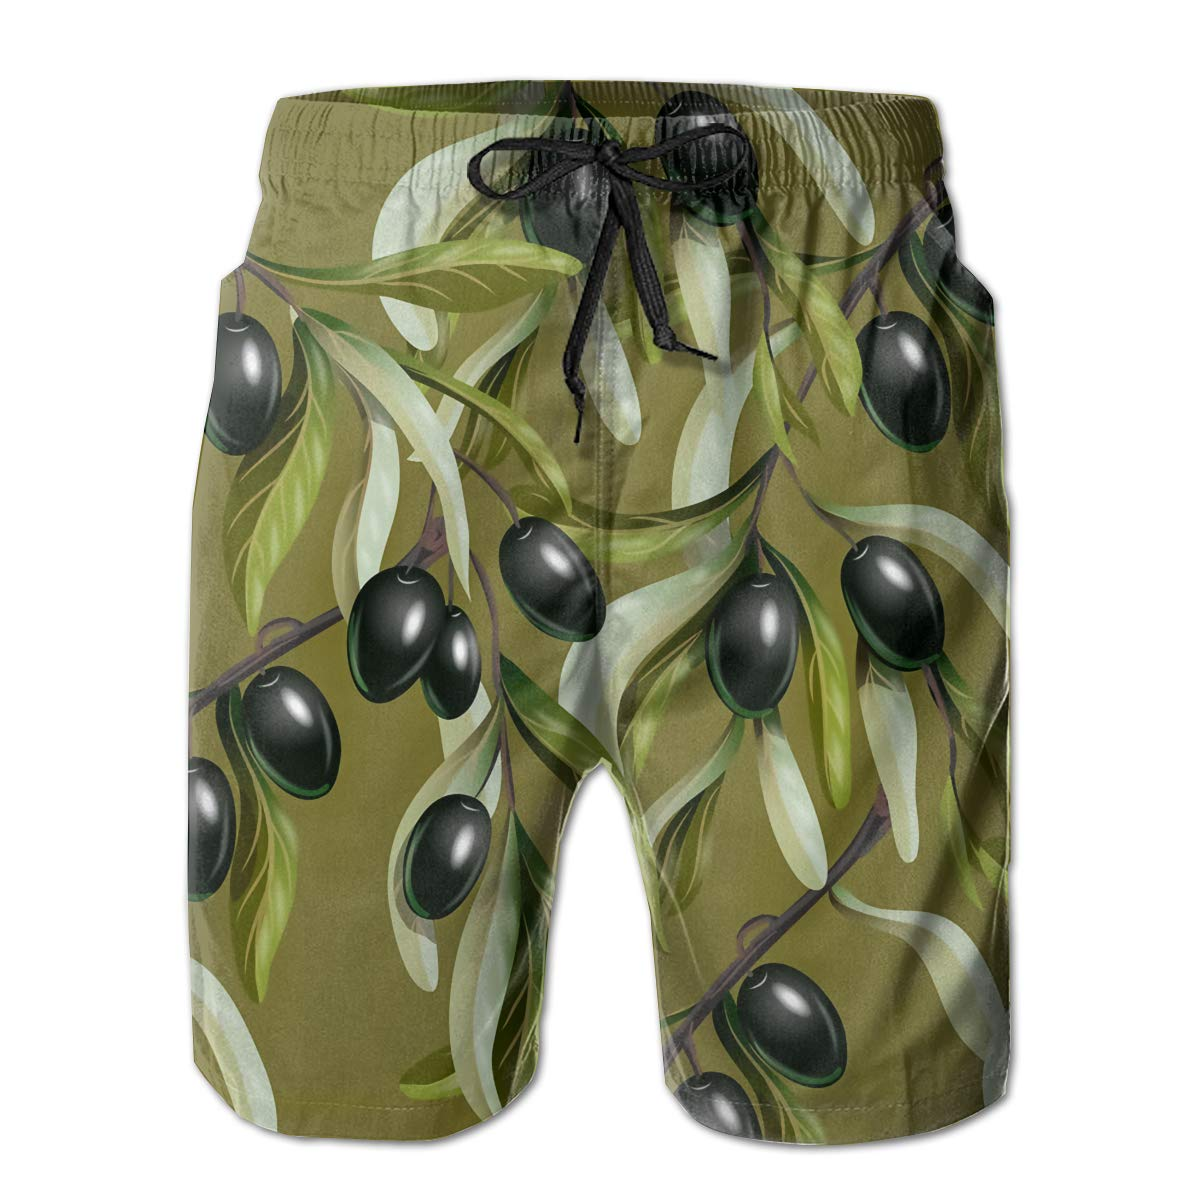 SARA NELL Mens Swim Trunks Black Olives Branches Surfing Beach Board Shorts Swimwear